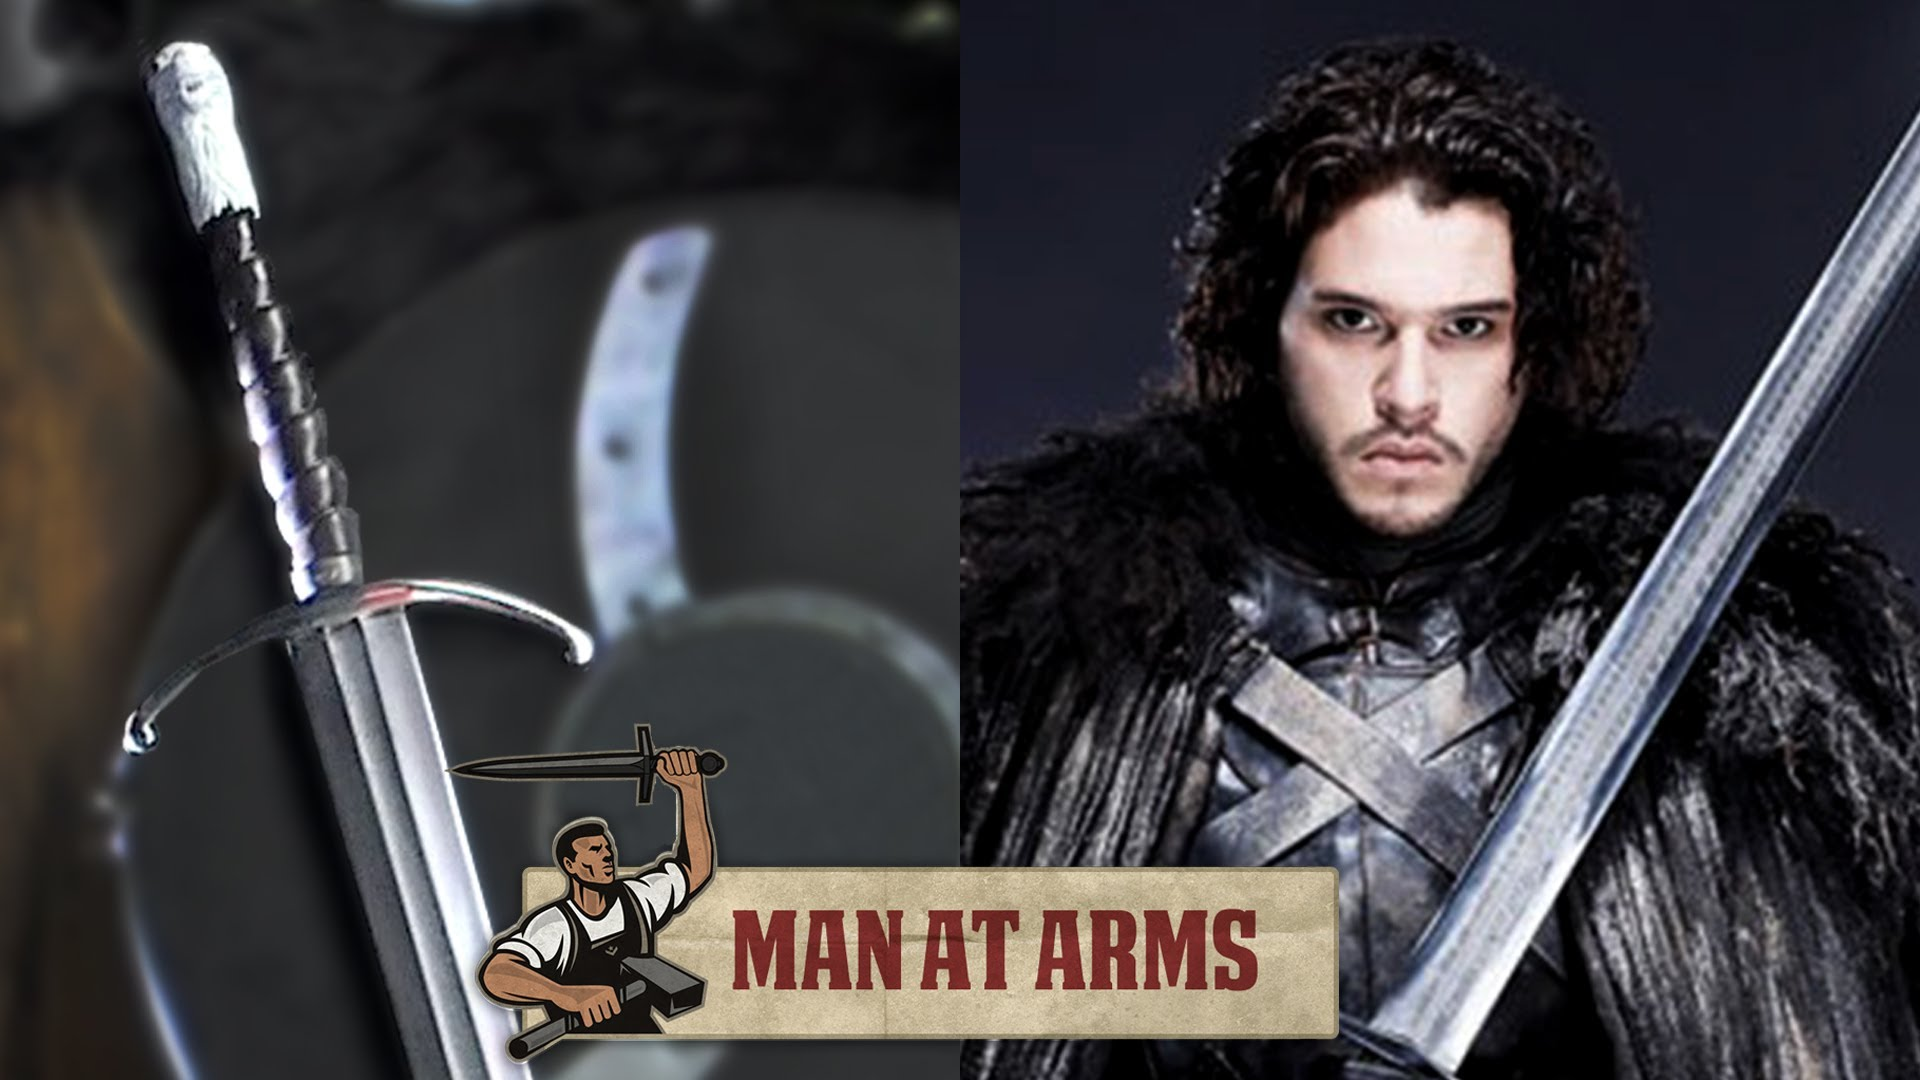 Man at Arms via Awe me